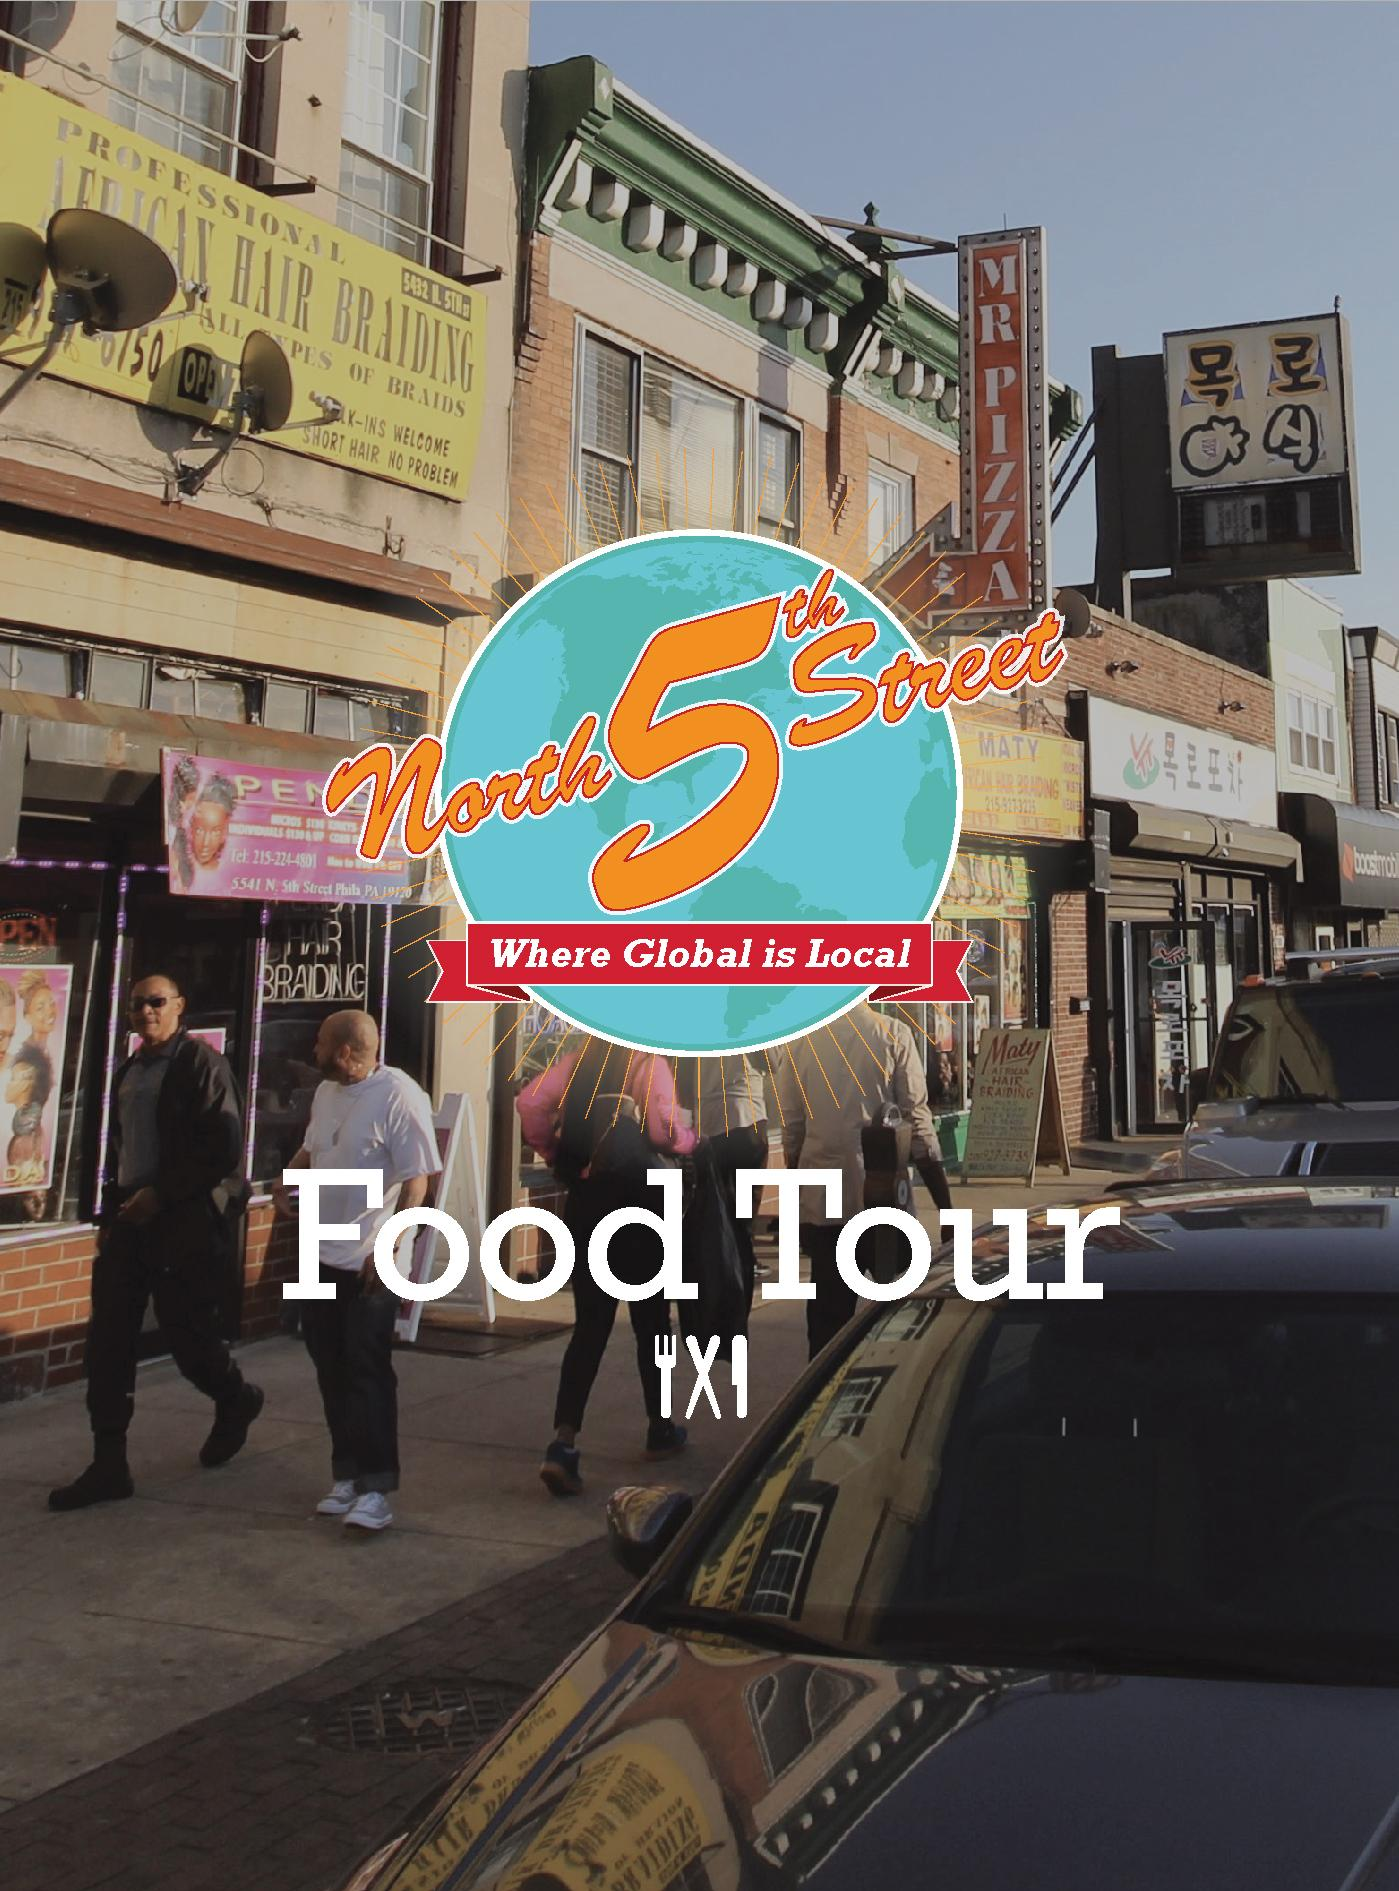 North 5th Street Food Tour: Where Global is Local